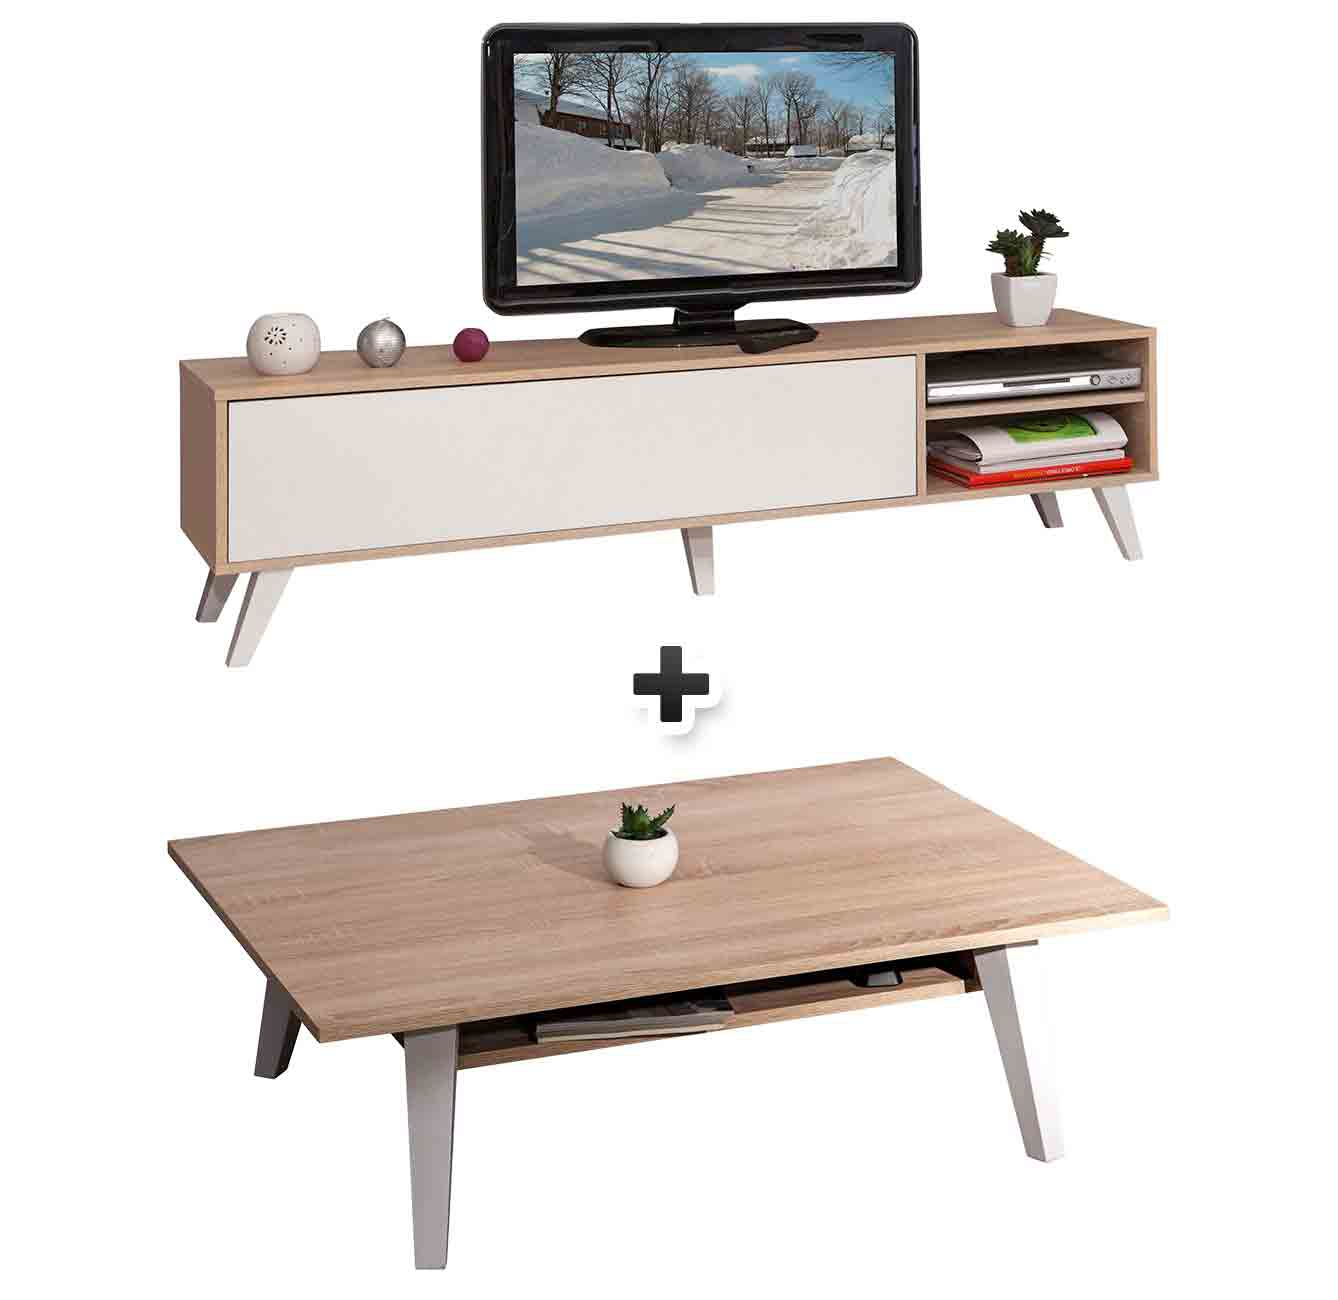 Meuble TV + table basse COSMOS chêne et blanc